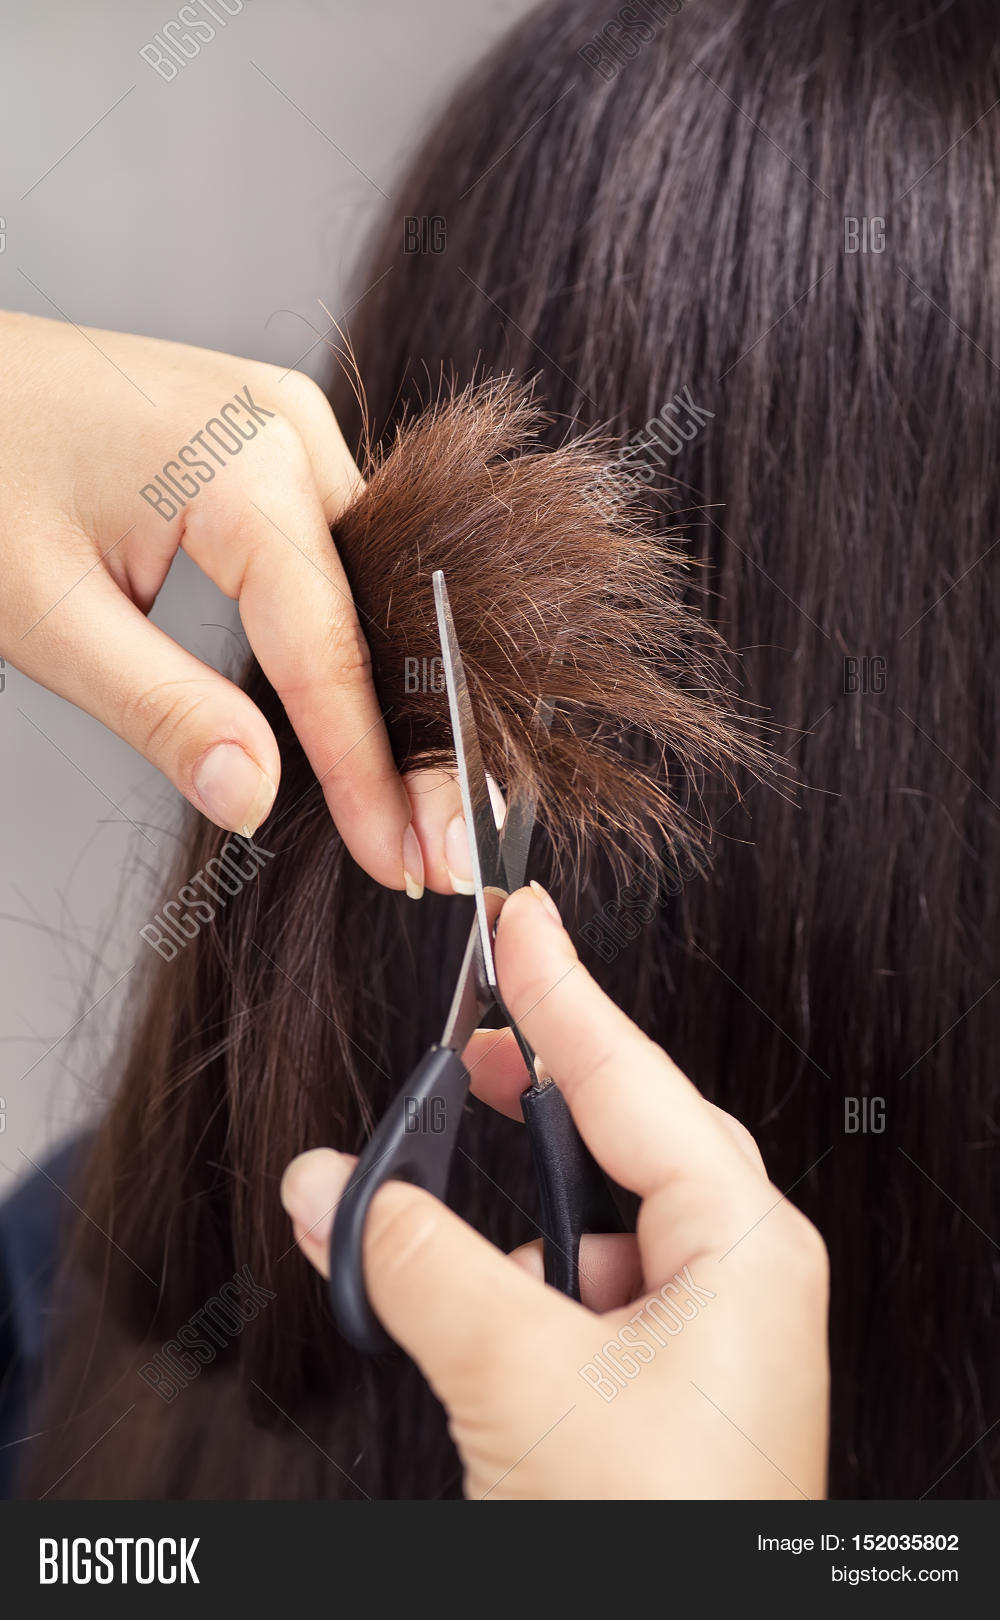 Hairdresser Trimming Image Photo Free Trial Bigstock